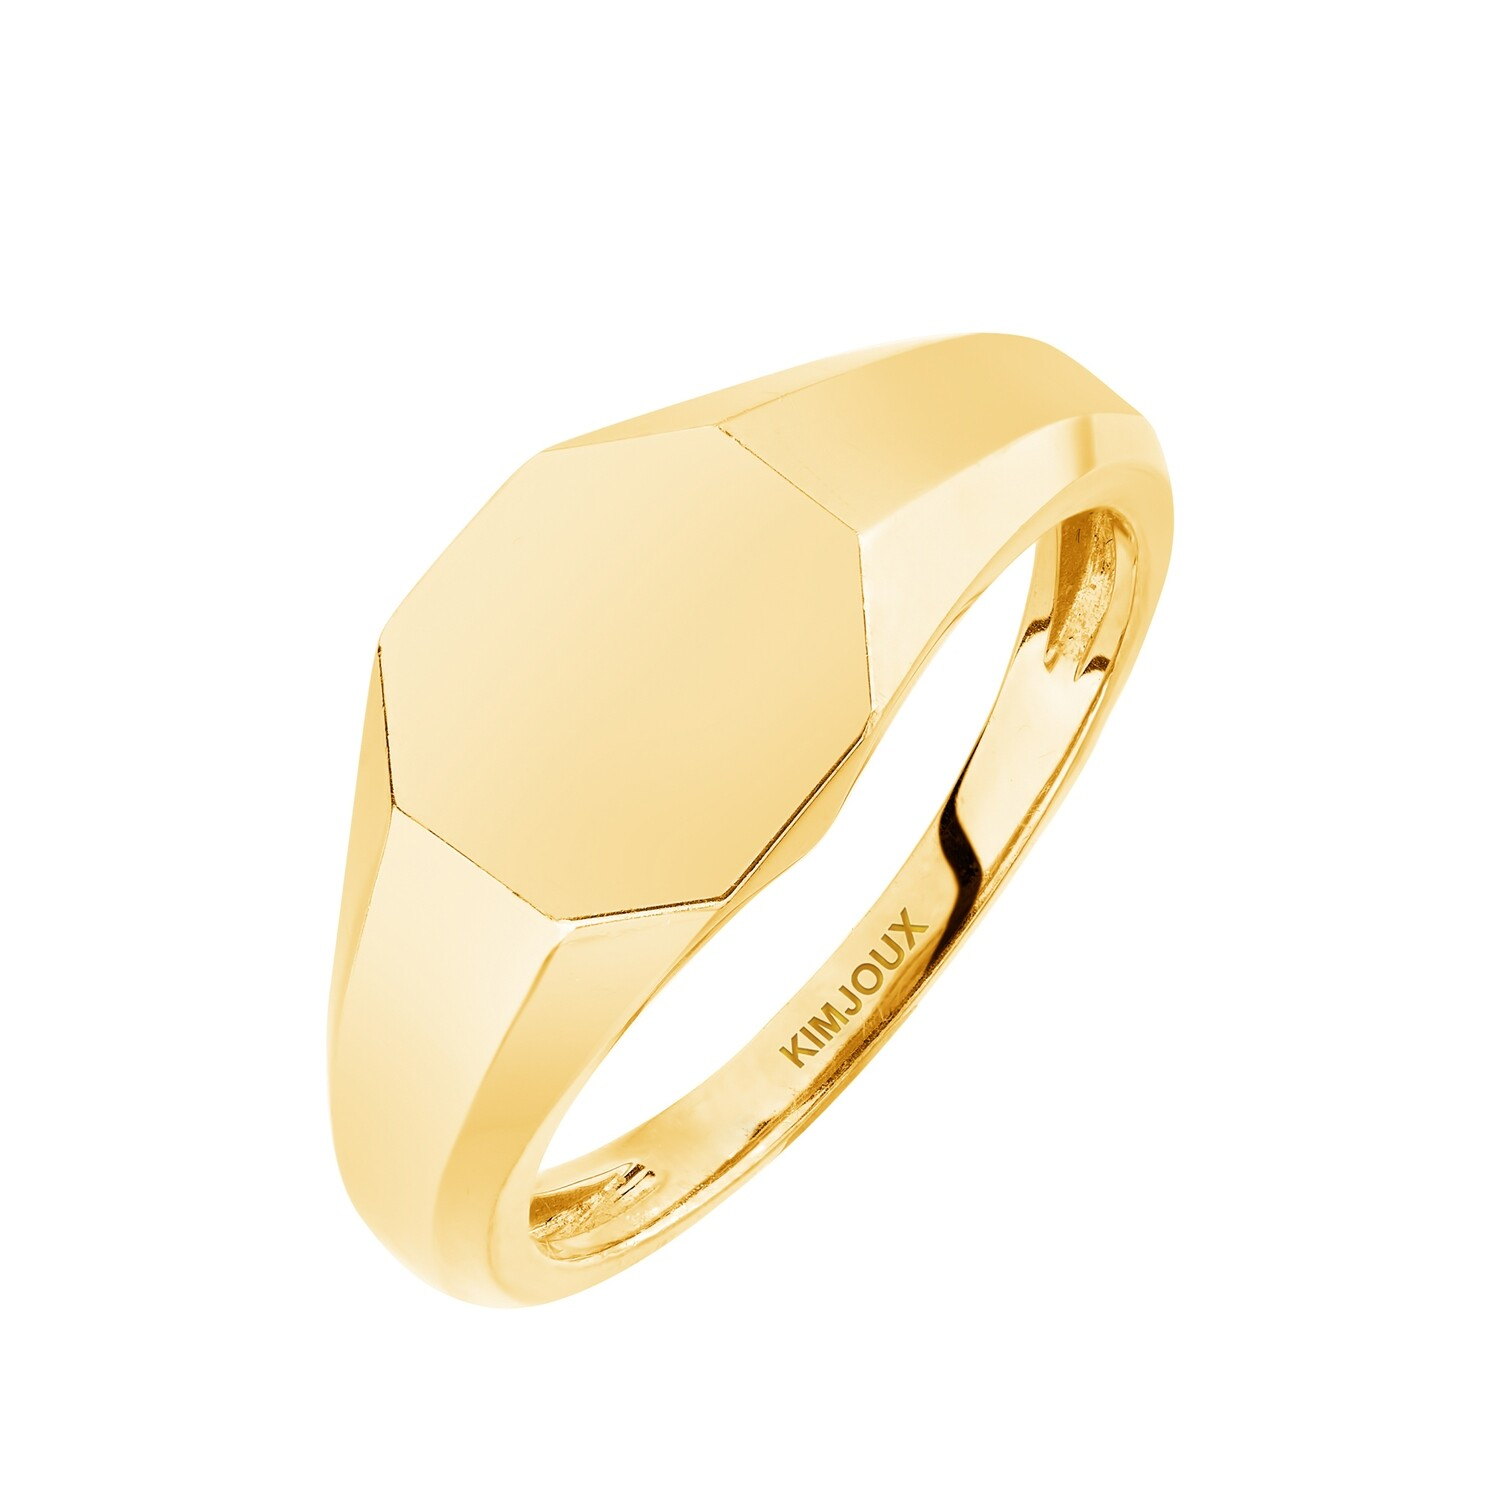 Kore Faceted Signet Ring